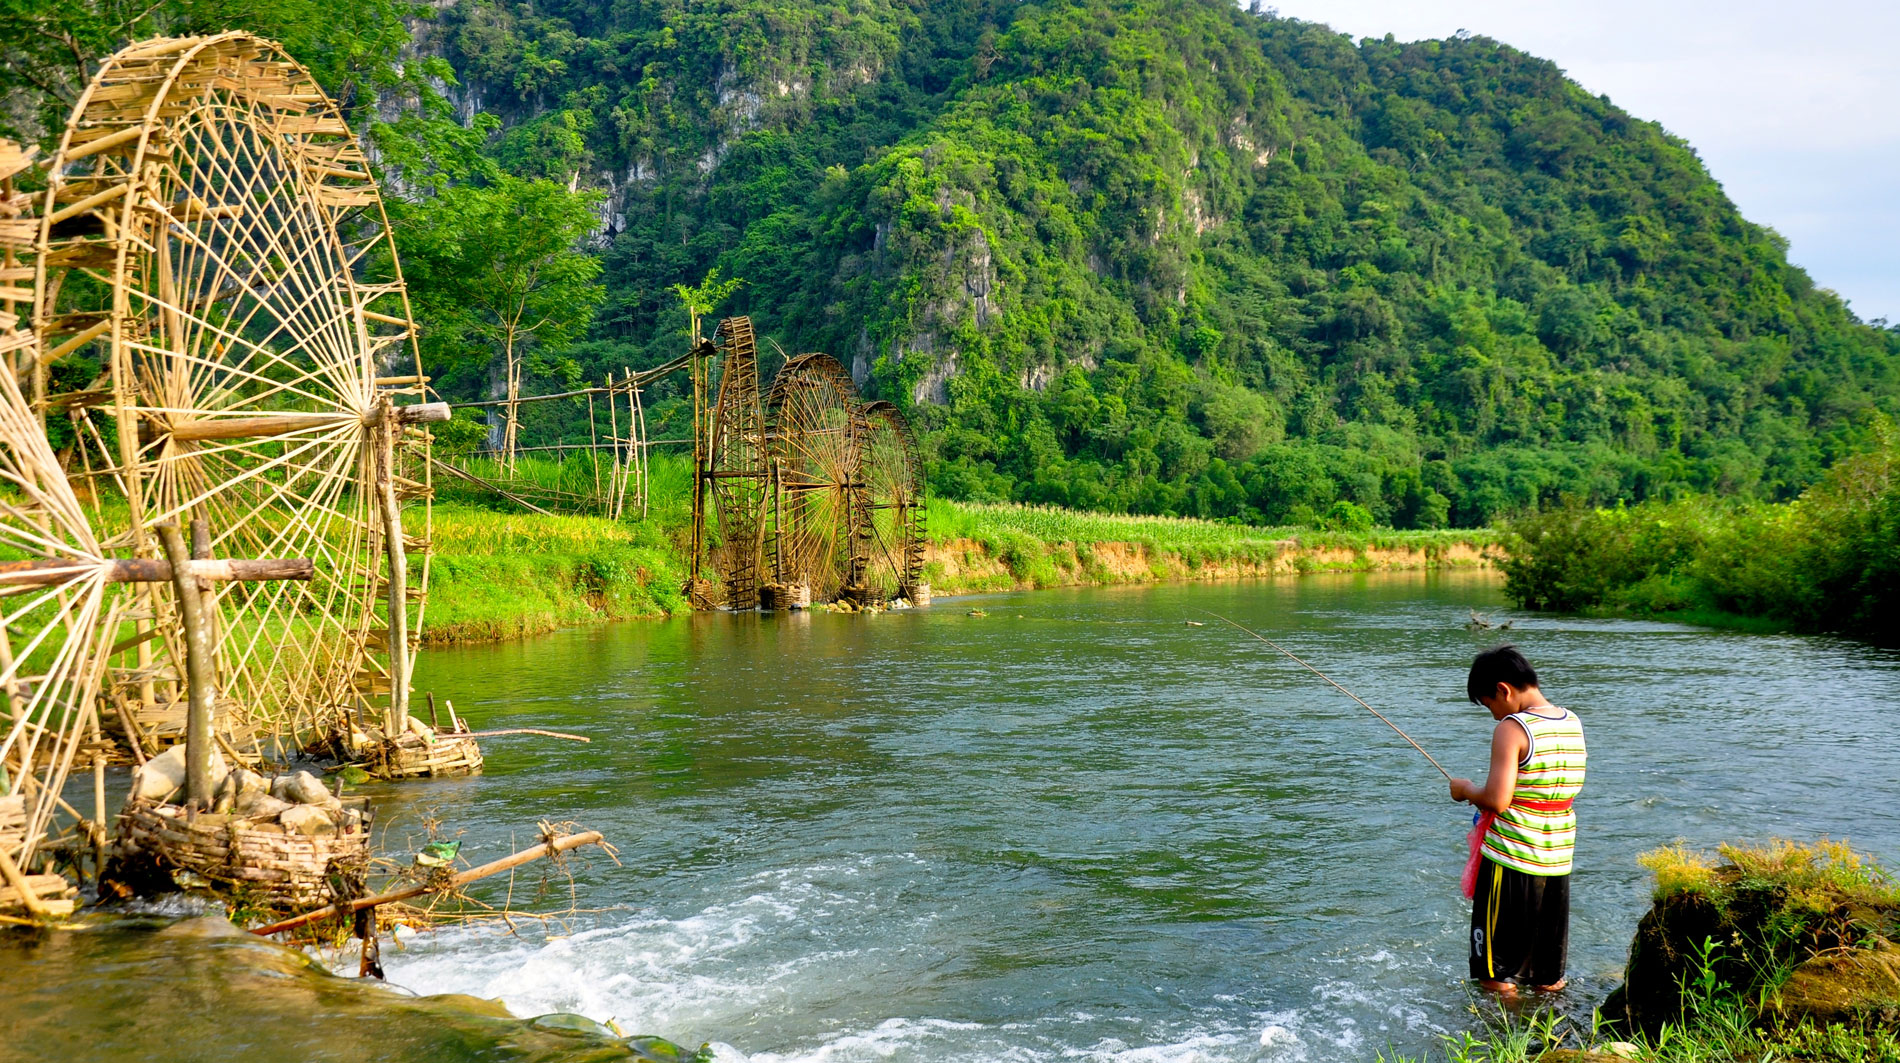 Ha noi - Pu Luong Discovery Homestay 2 days trekking tour